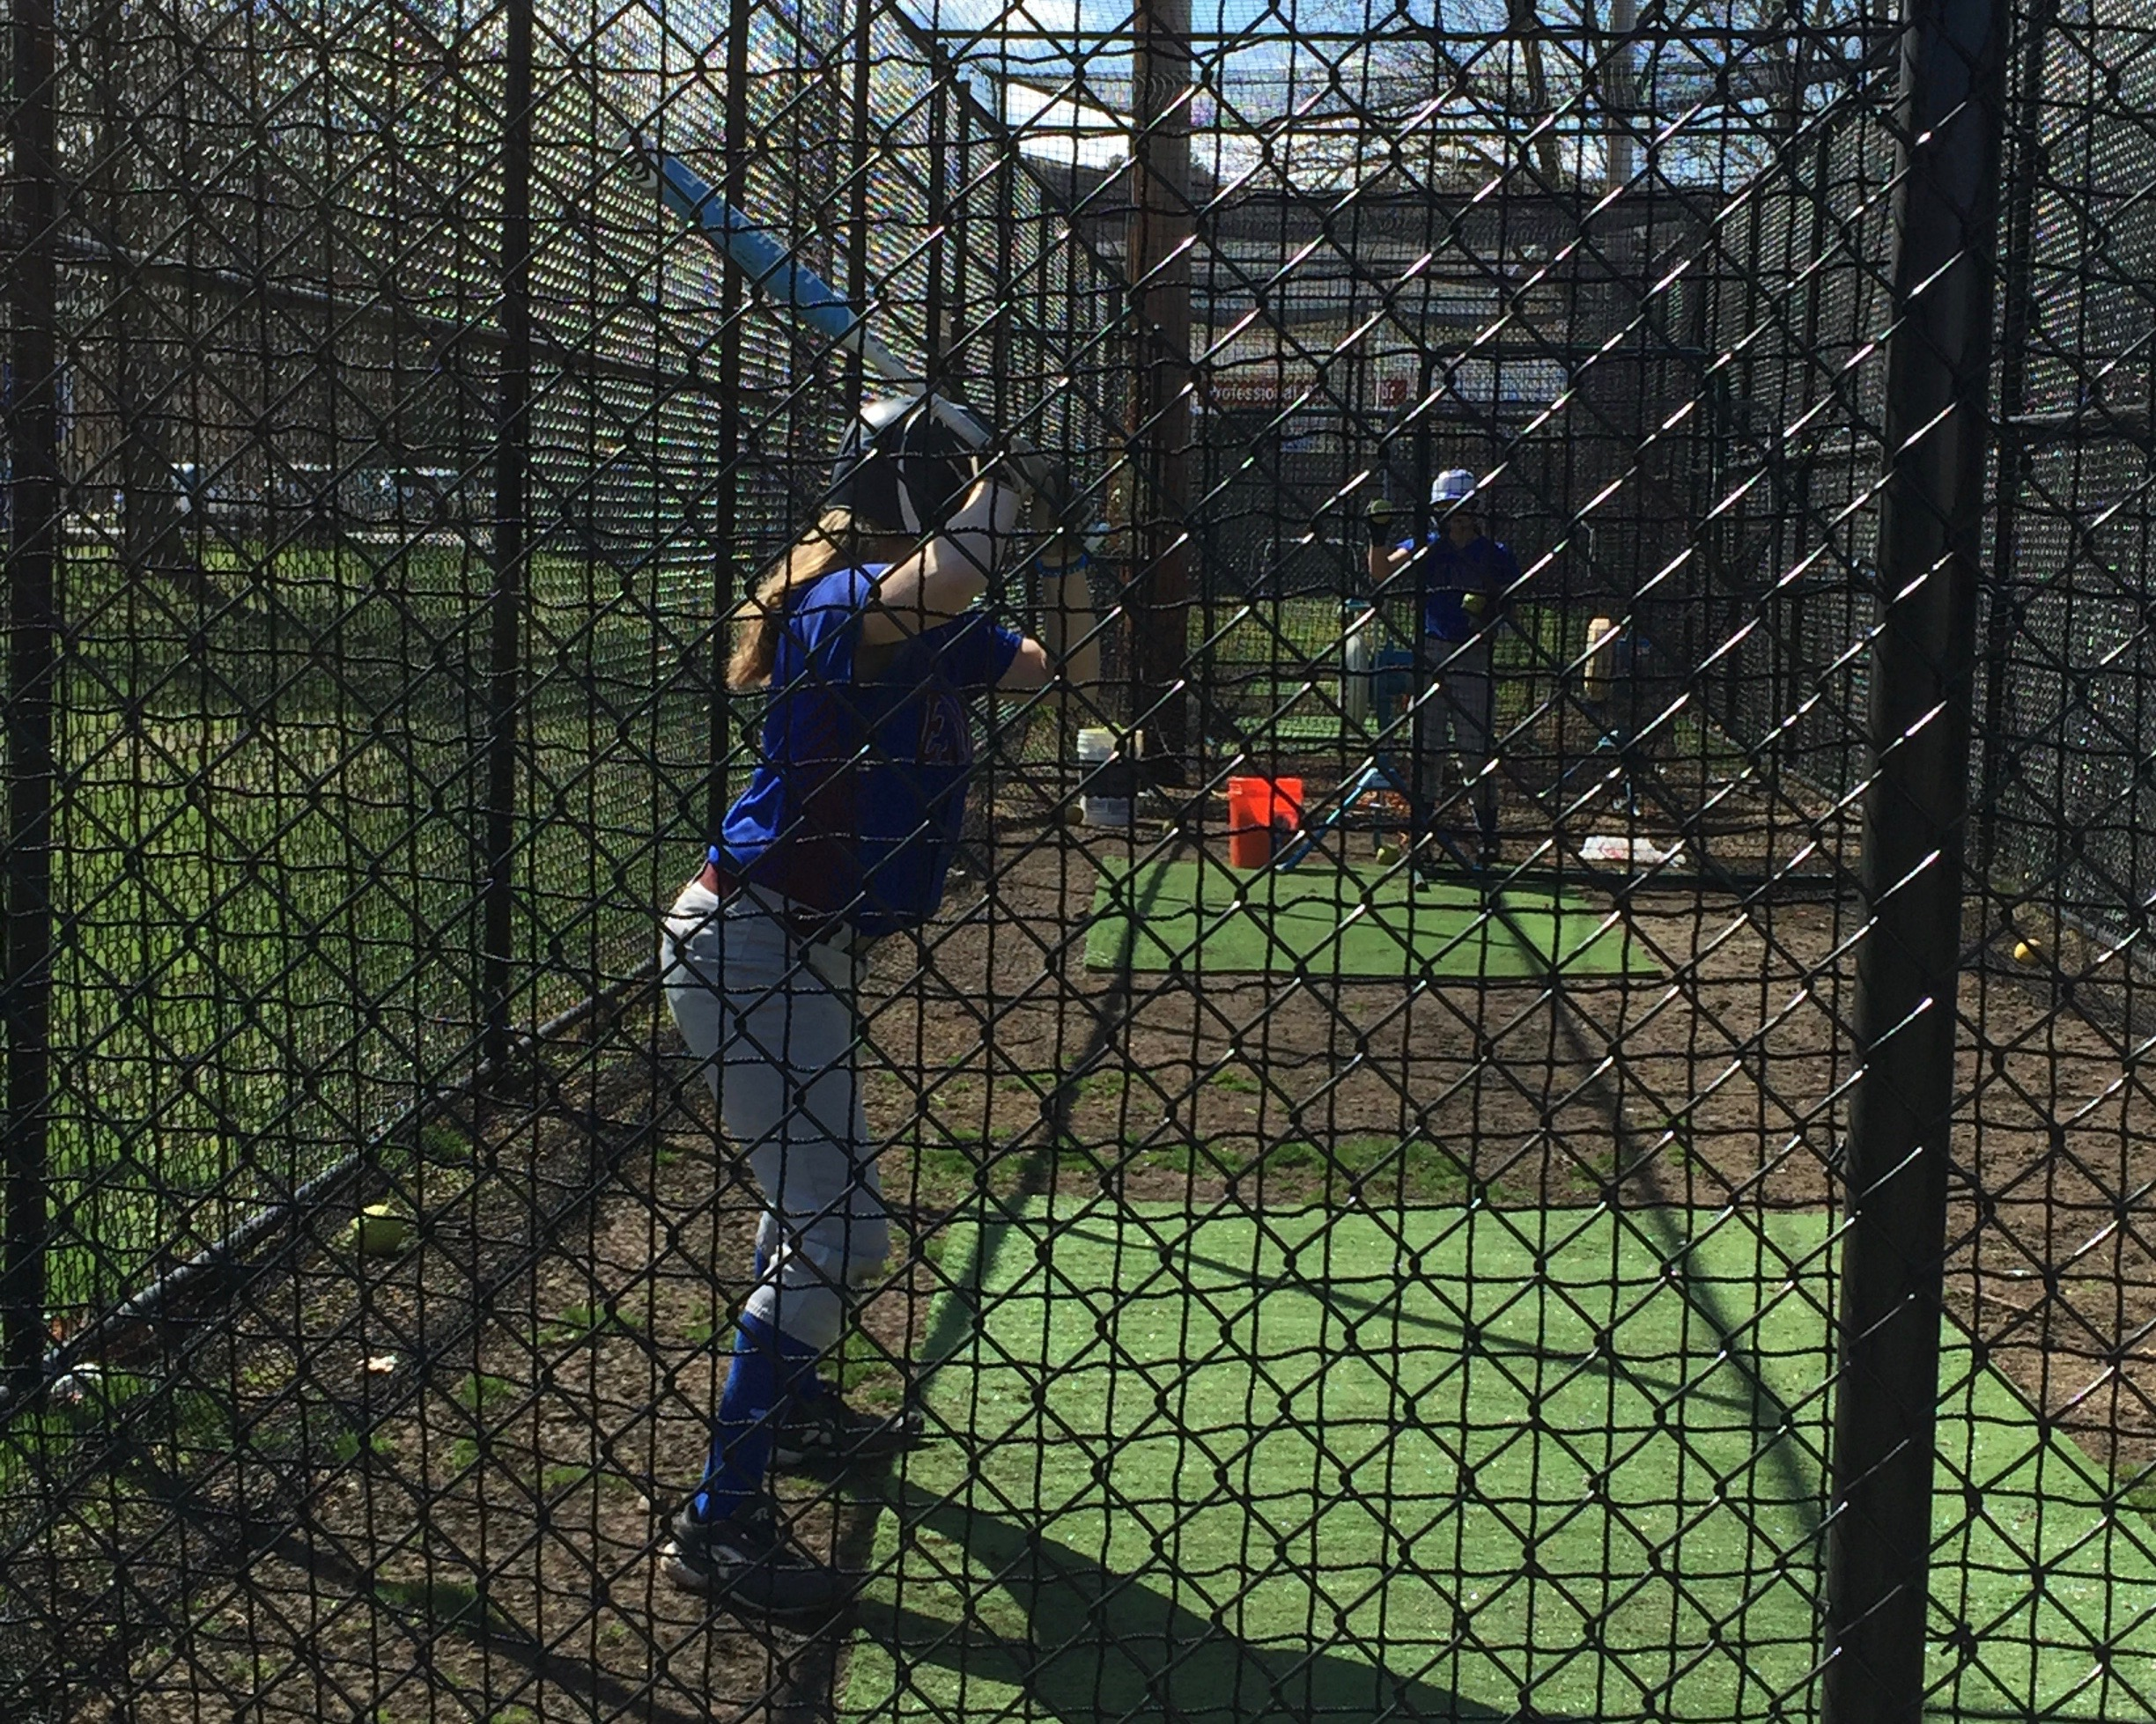 2015softball batting cage